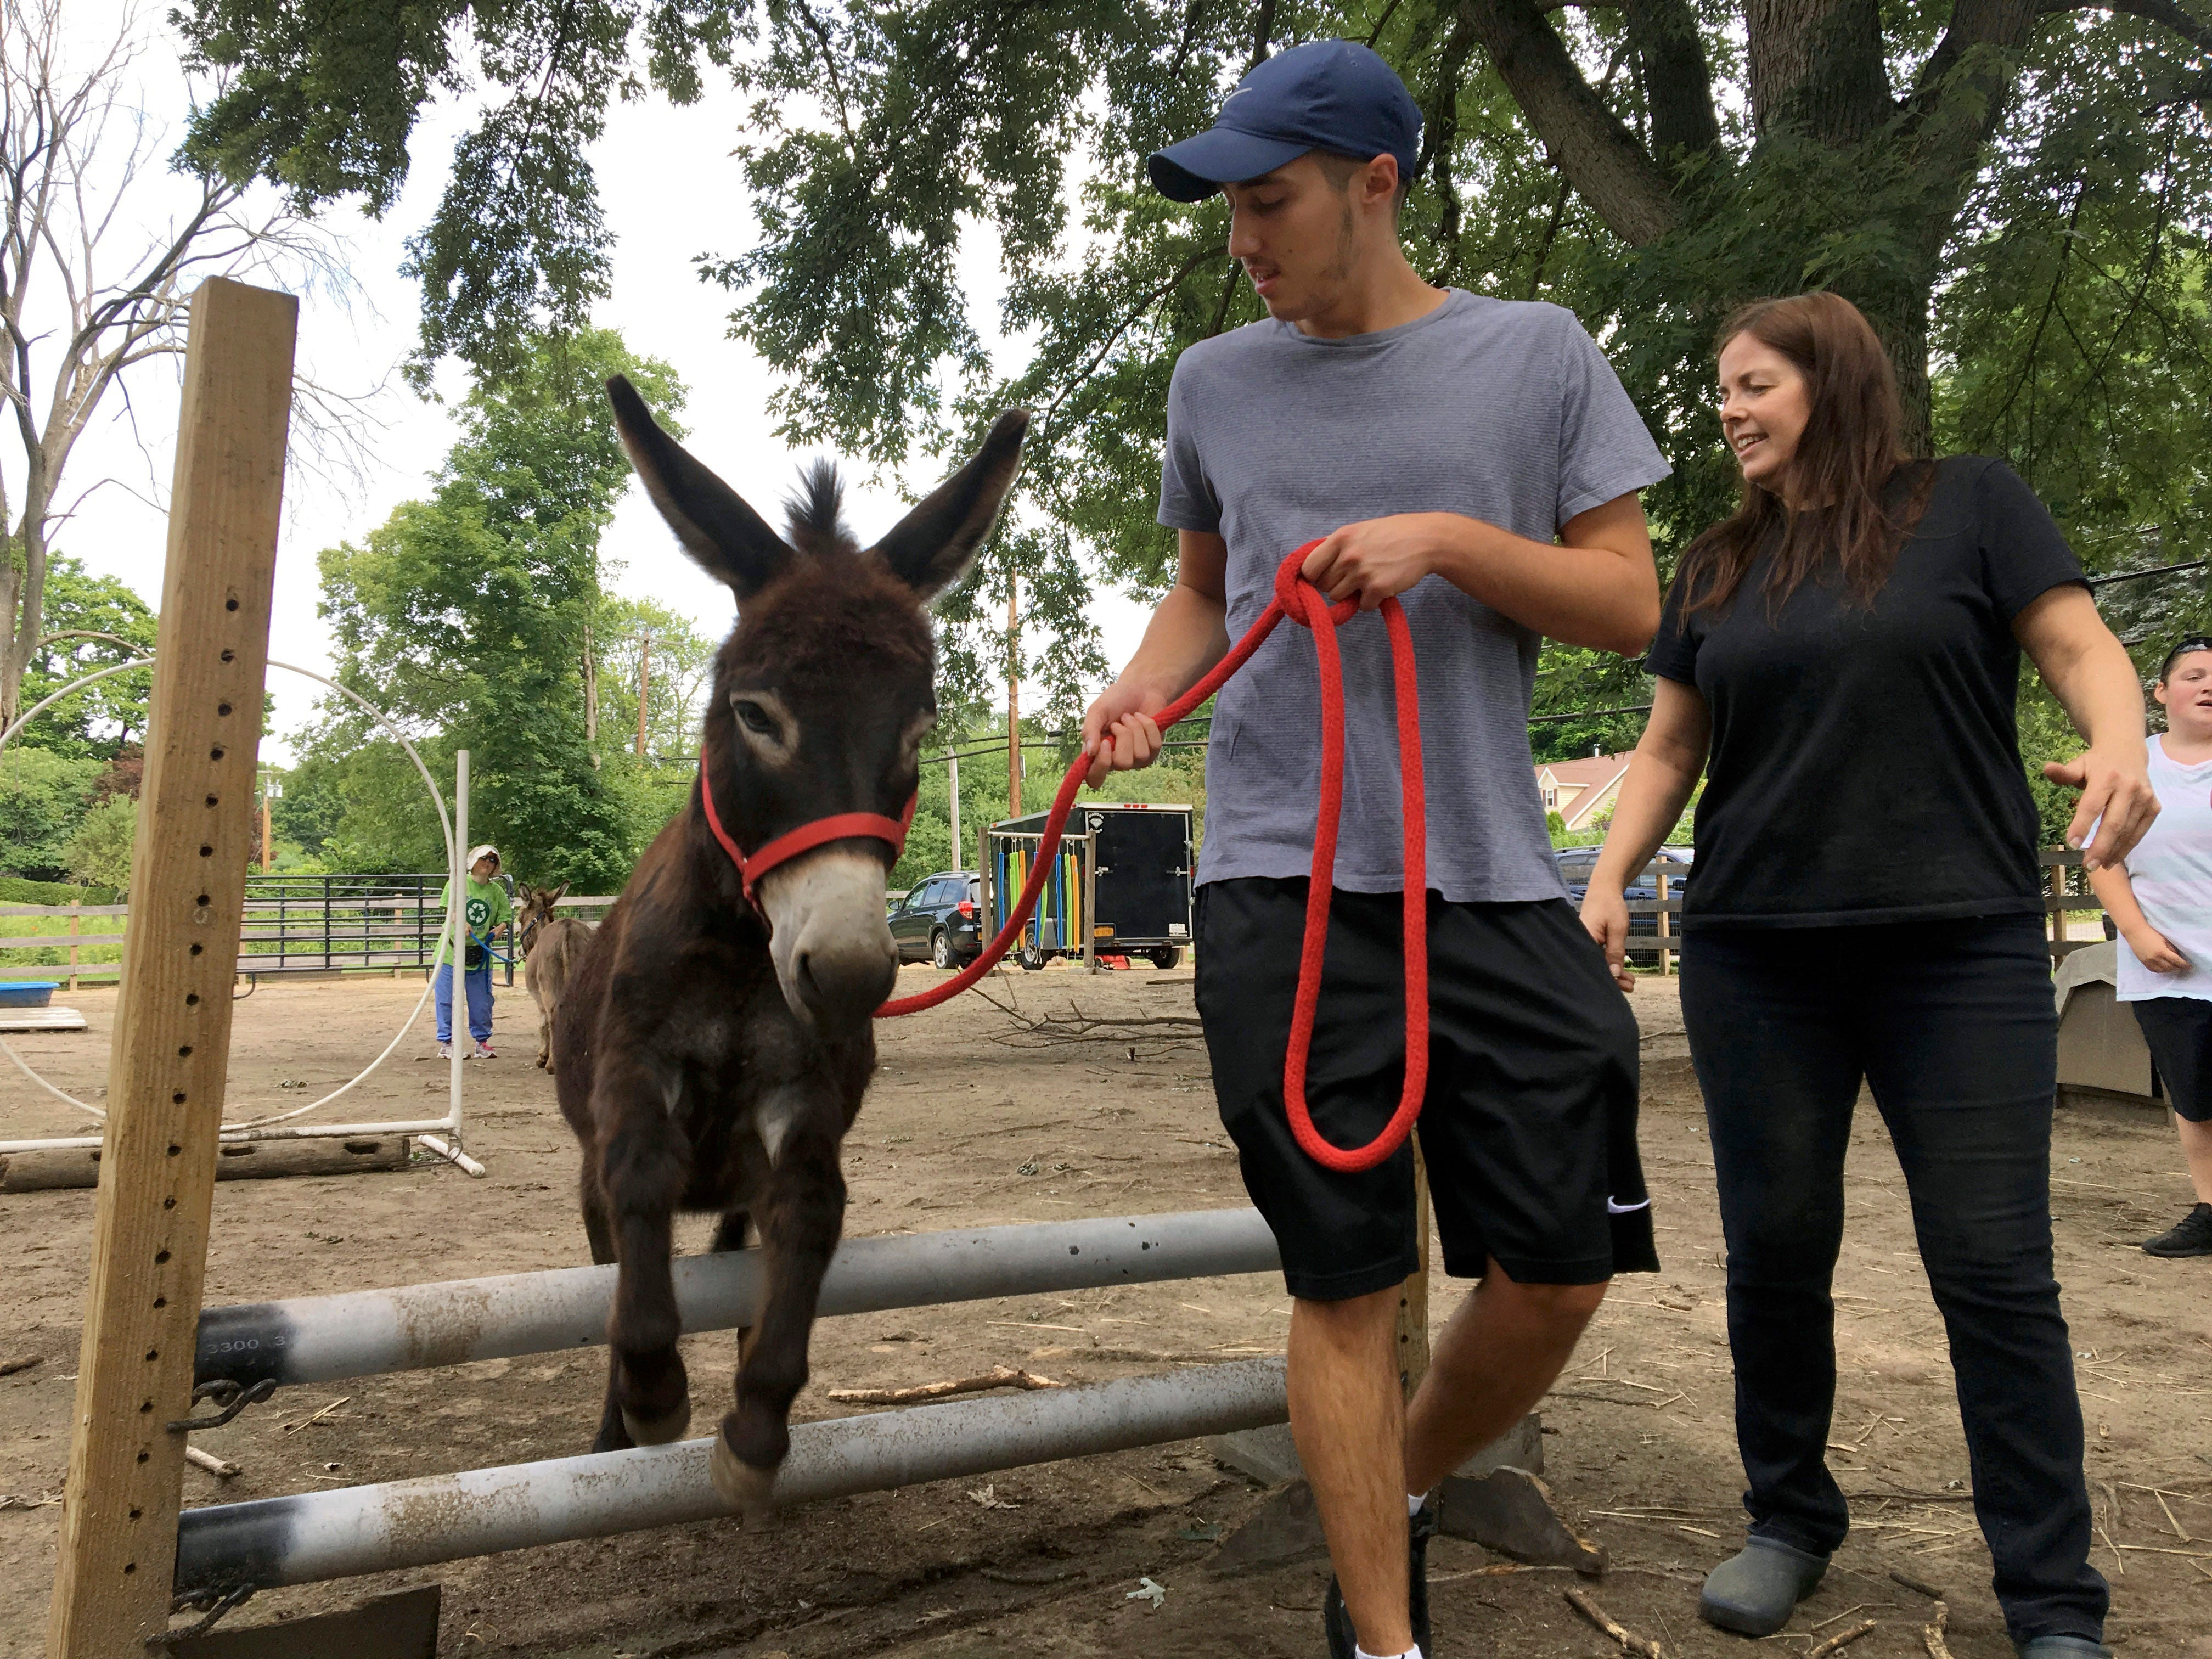 In this July 30 photo Donkey Park visitor Evan Oster leads a miniature donkey through an obstacle course as volunteer Patti Lundgren looks on, at Donkey Park in Ulster Park.